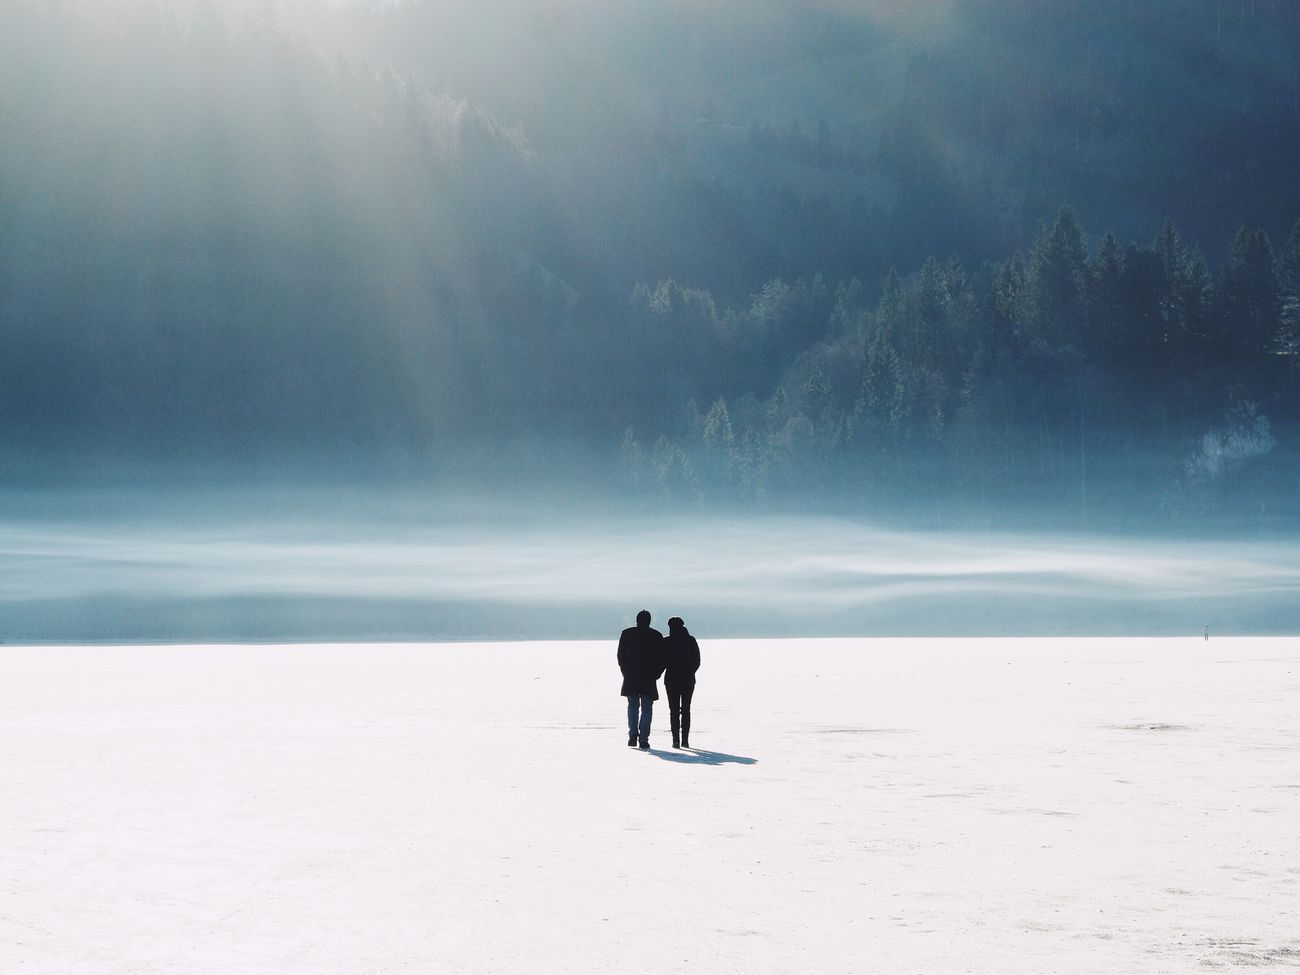 Nature Winter Real People Snow Outdoors Scenics Cold Temperature Beauty In Nature Rear View Landscape Togetherness Frozen Frozen Lake Cold Walking at Schwarzsee Switzerland